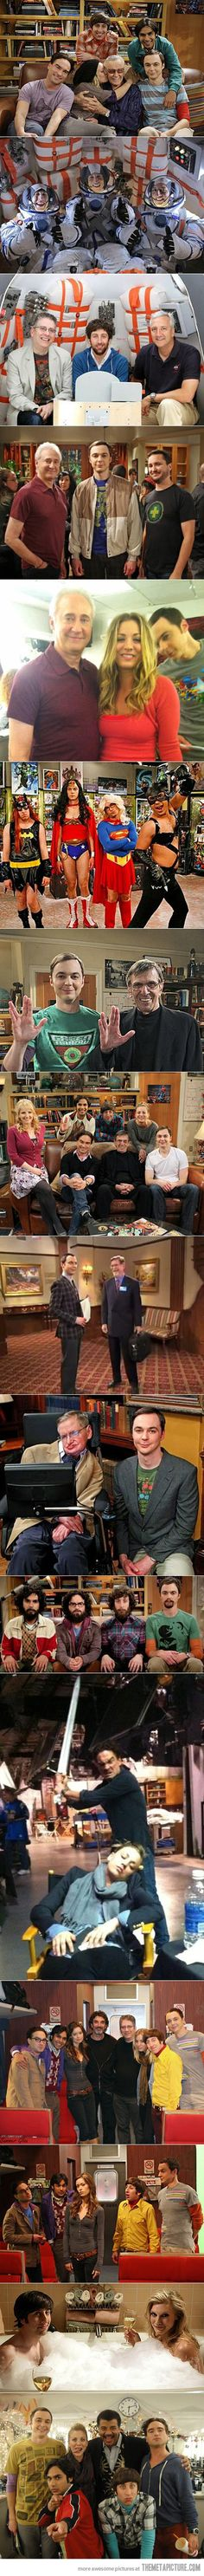 The Big Bang Theory celebrity round up. It must be great to be Stan Lee.